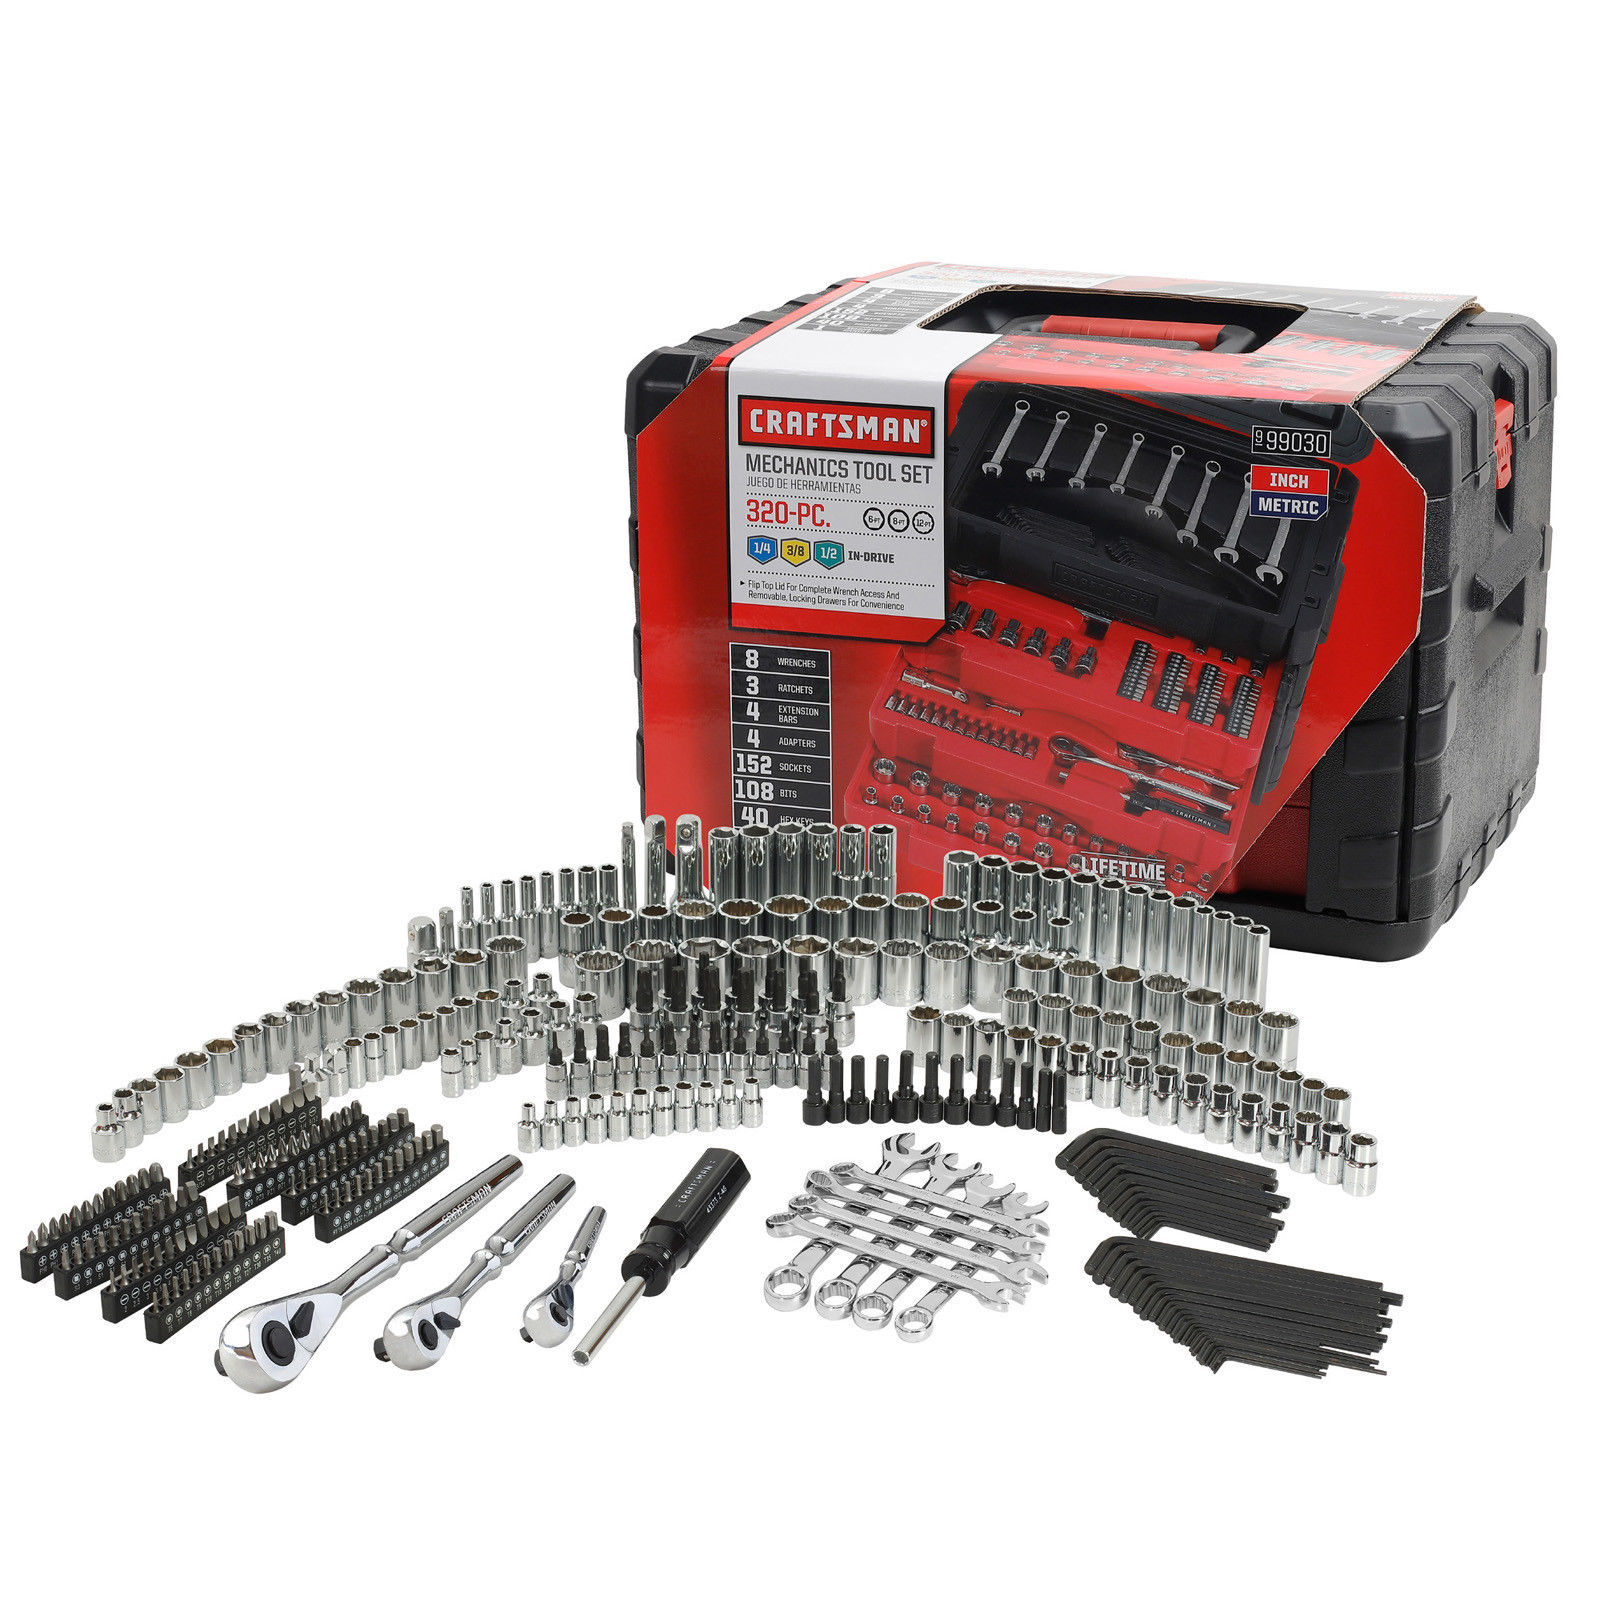 Craftsman Mechanics Tool Set 320 Piece Metric Drive Storage Case 9-99030